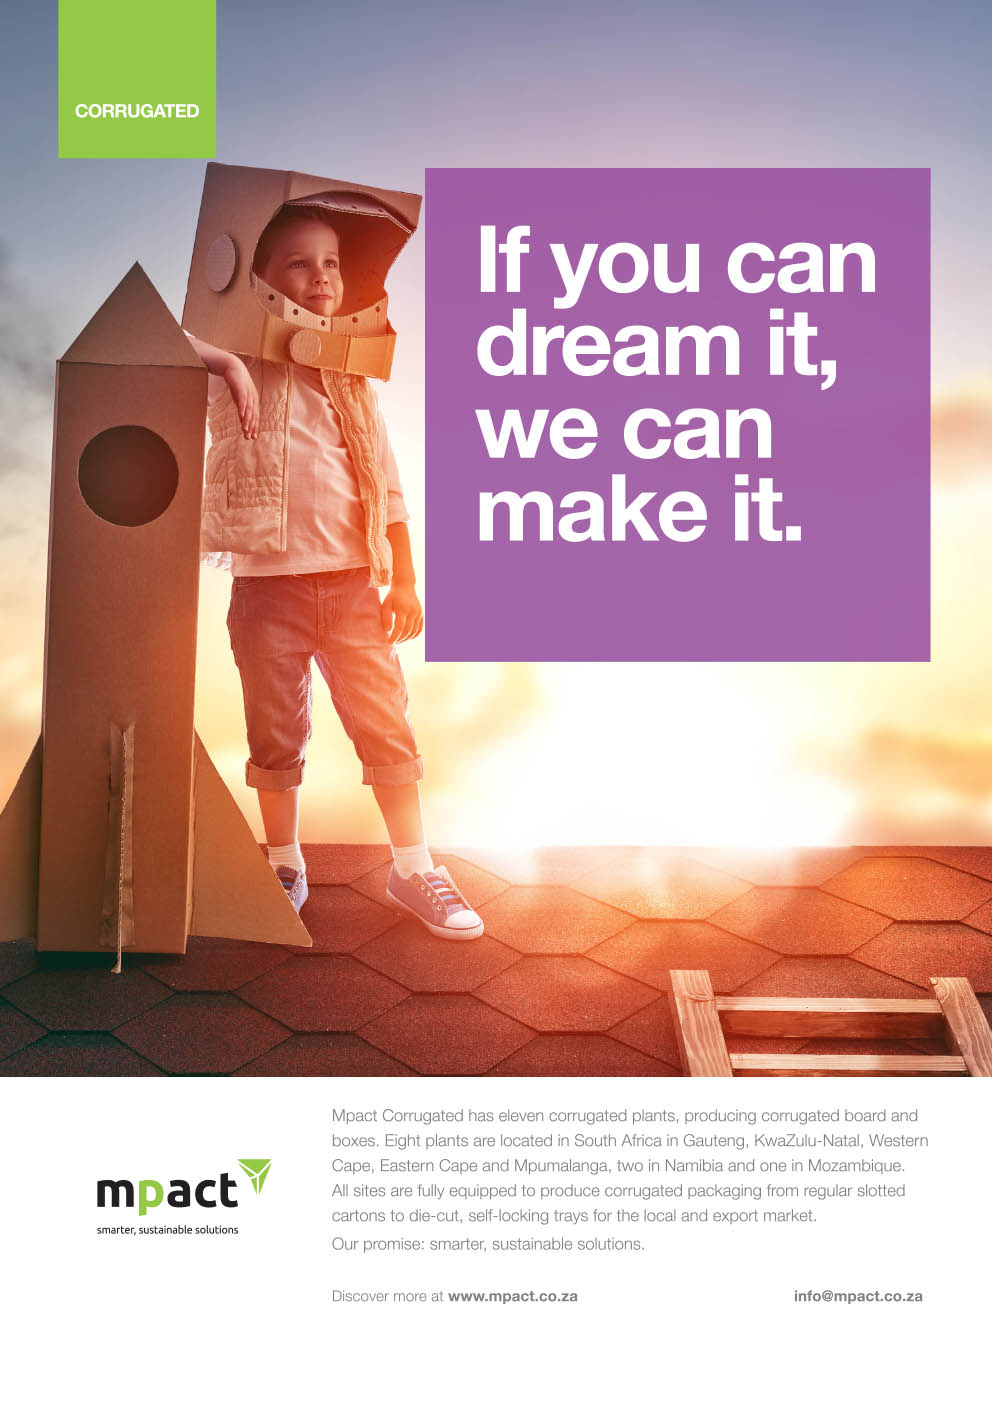 Mpact Ad Campaign MAY 2016_CORRUGATED_297X210.jpg